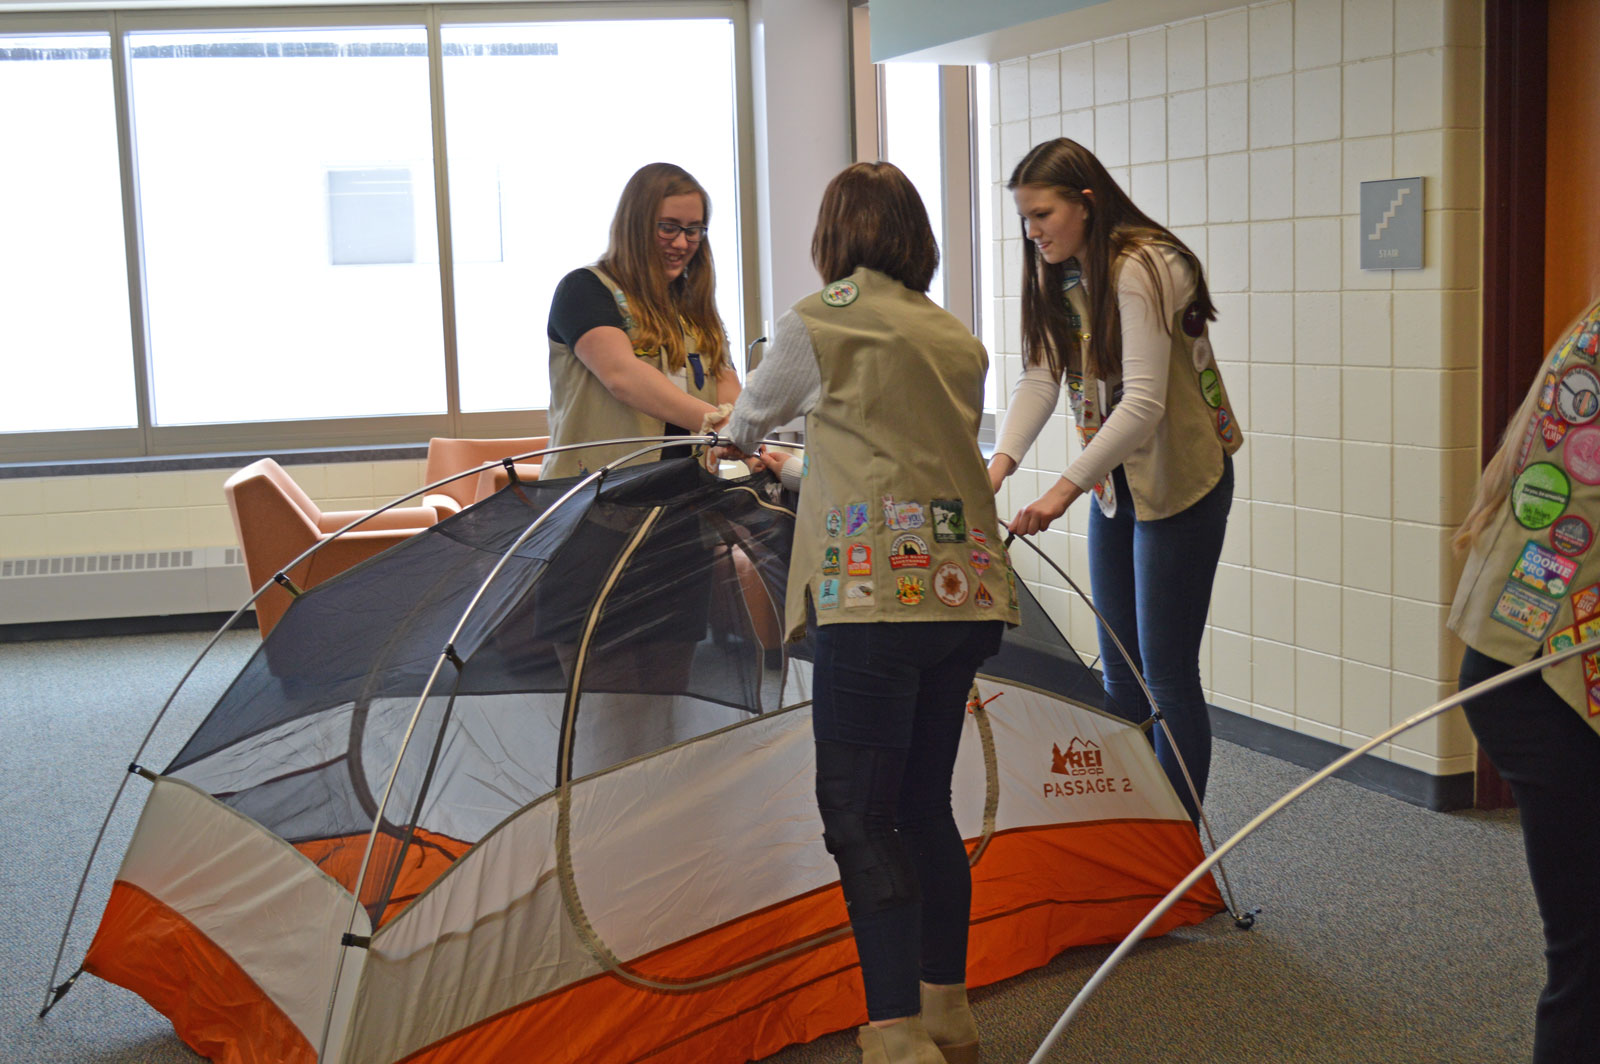 Three Girl Scouts build a tent together in the outdoor workshop.